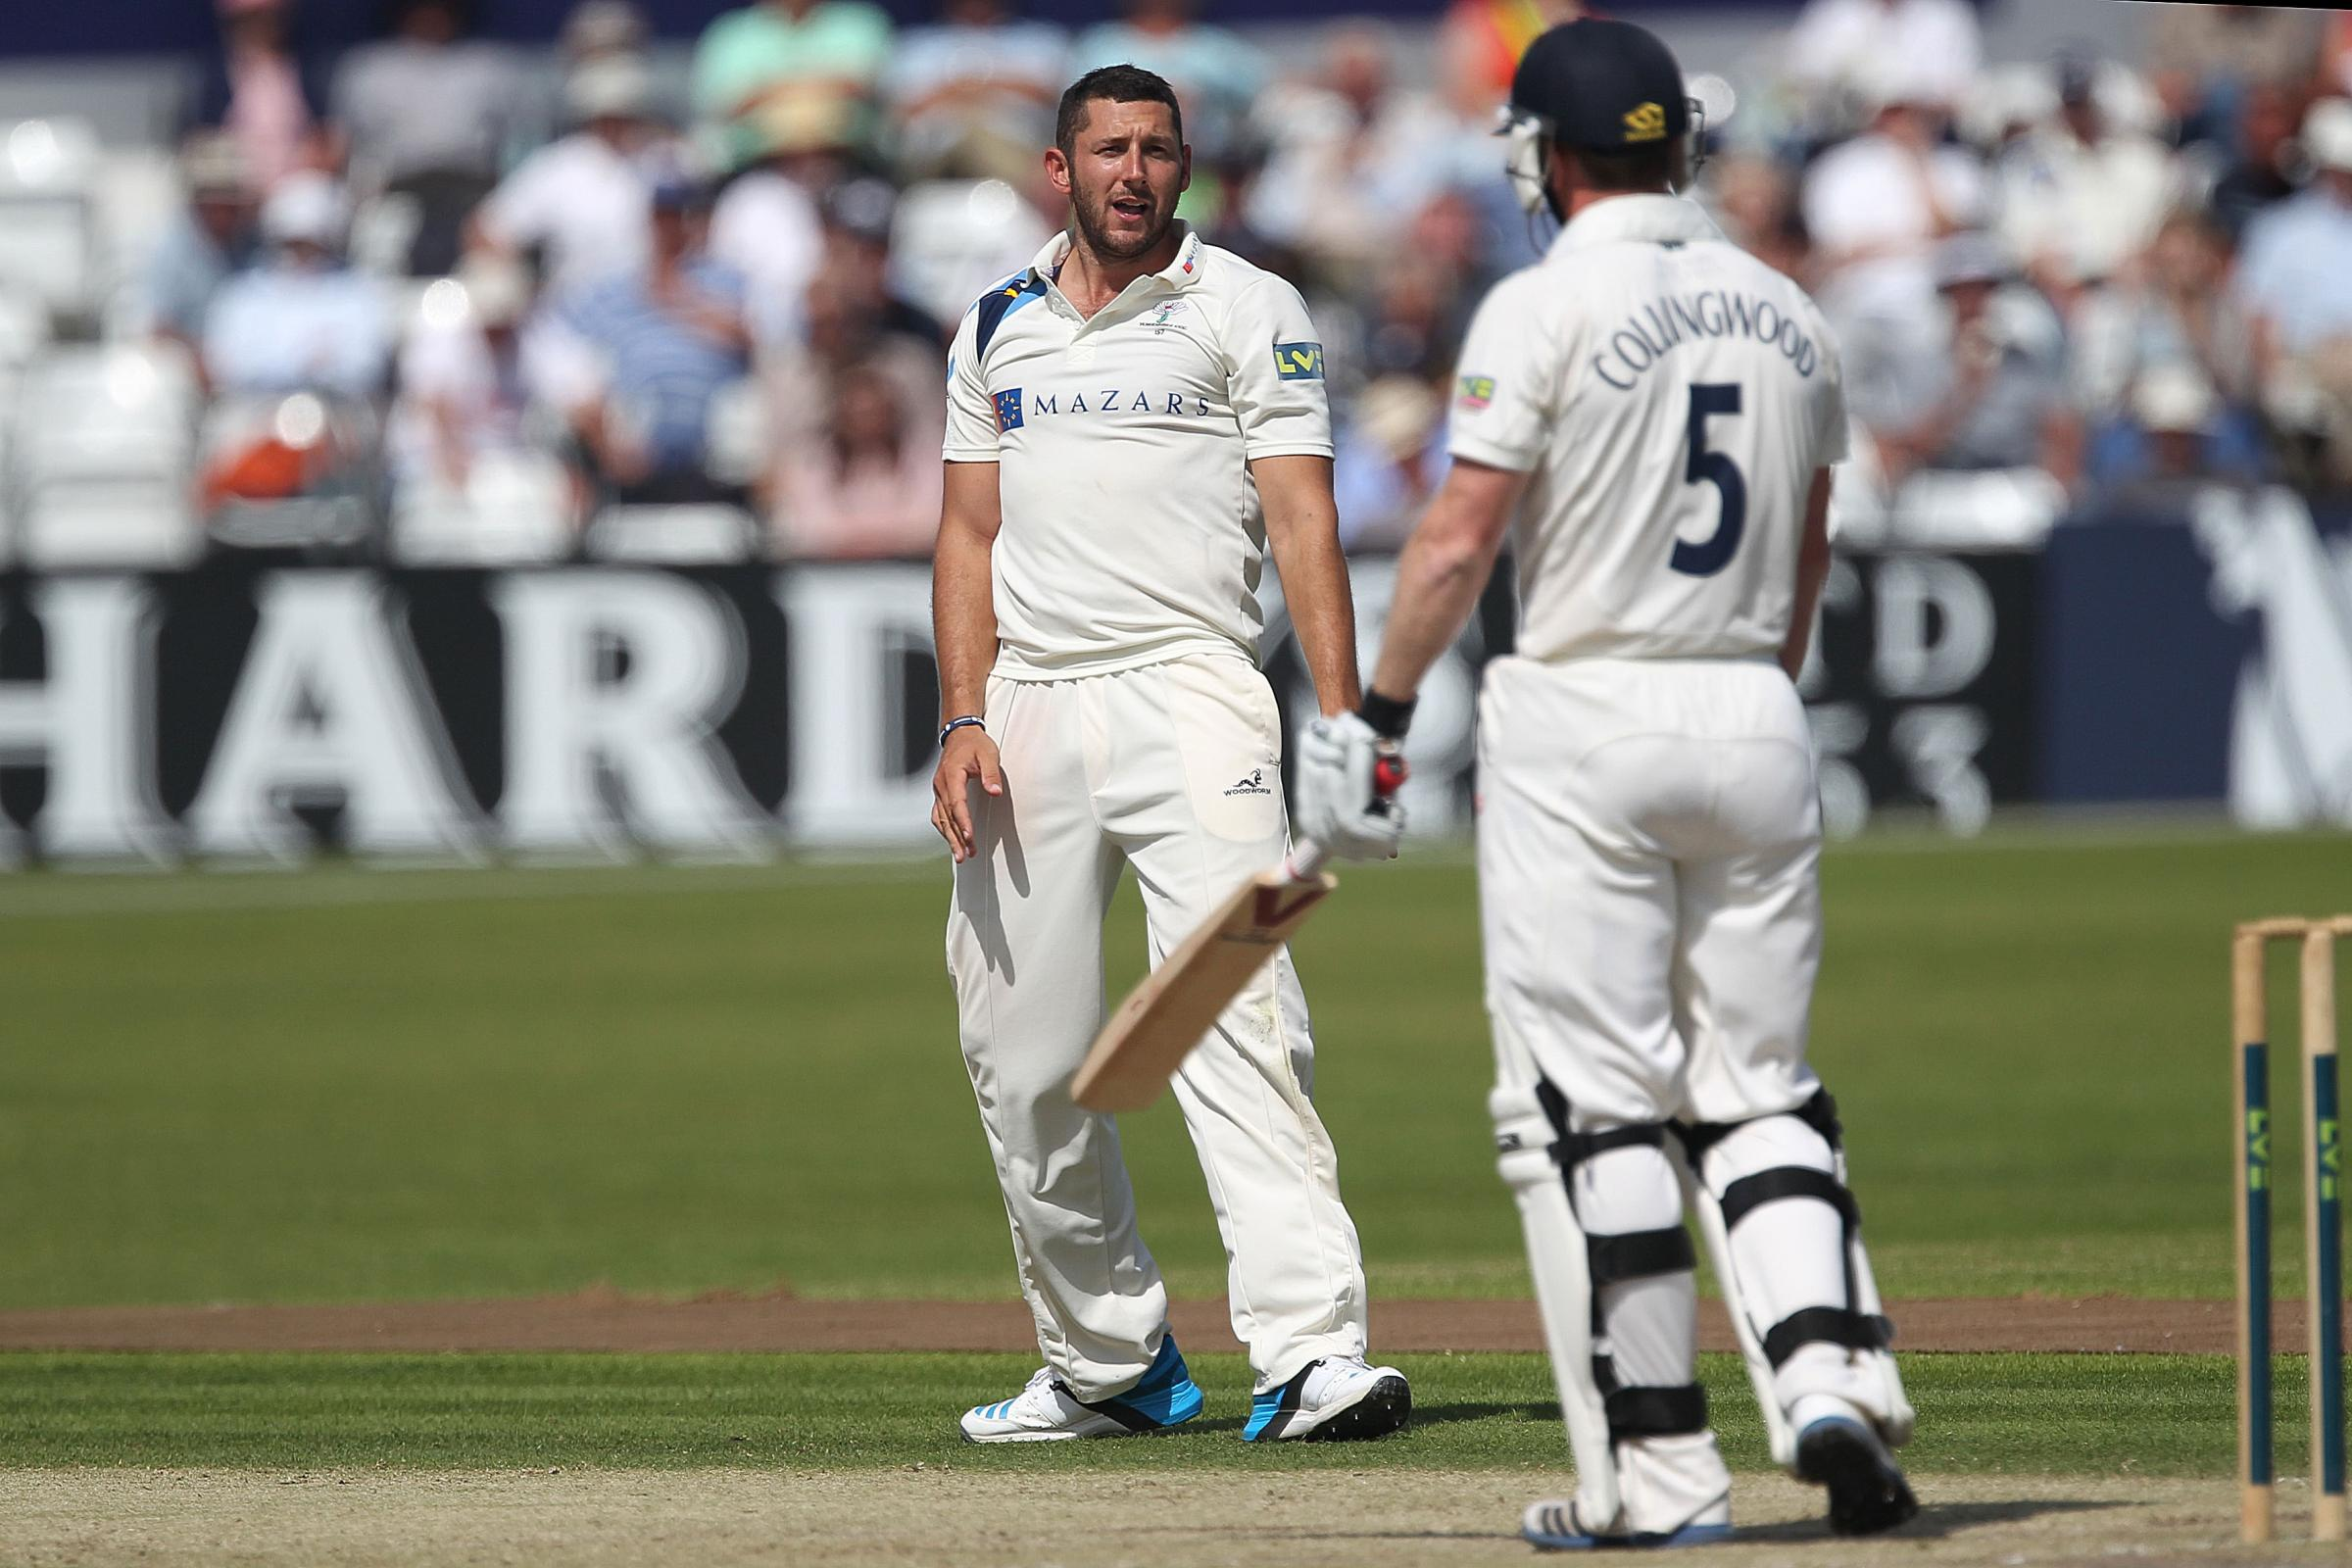 LEEDS, ENG. Yorkshire's Tim Bresnan and Durham's Paul Collingwood exchange words during Day 3 of the LV County Championship match between Yorkshire vs Durham at the Headingley Stadium, Leeds on Wednesday 9th July 2014. (Photo: Mark Fletcher | Shut